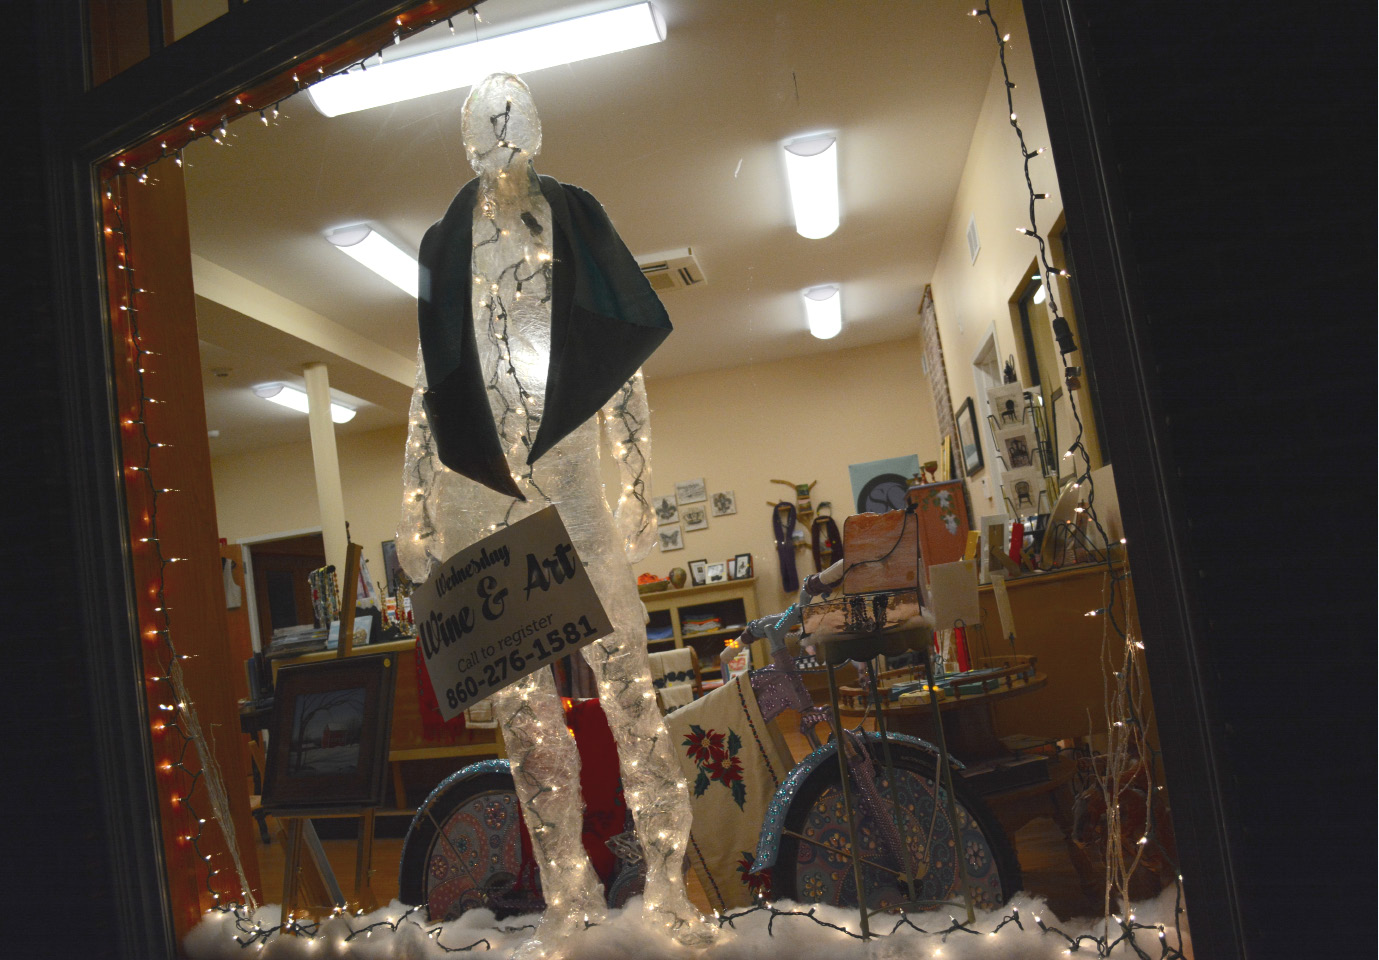 A tape figure at the Southington Community Cultural Arts building on Thursday, Dec. 8. | Bryan Lipiner, Record-Journal